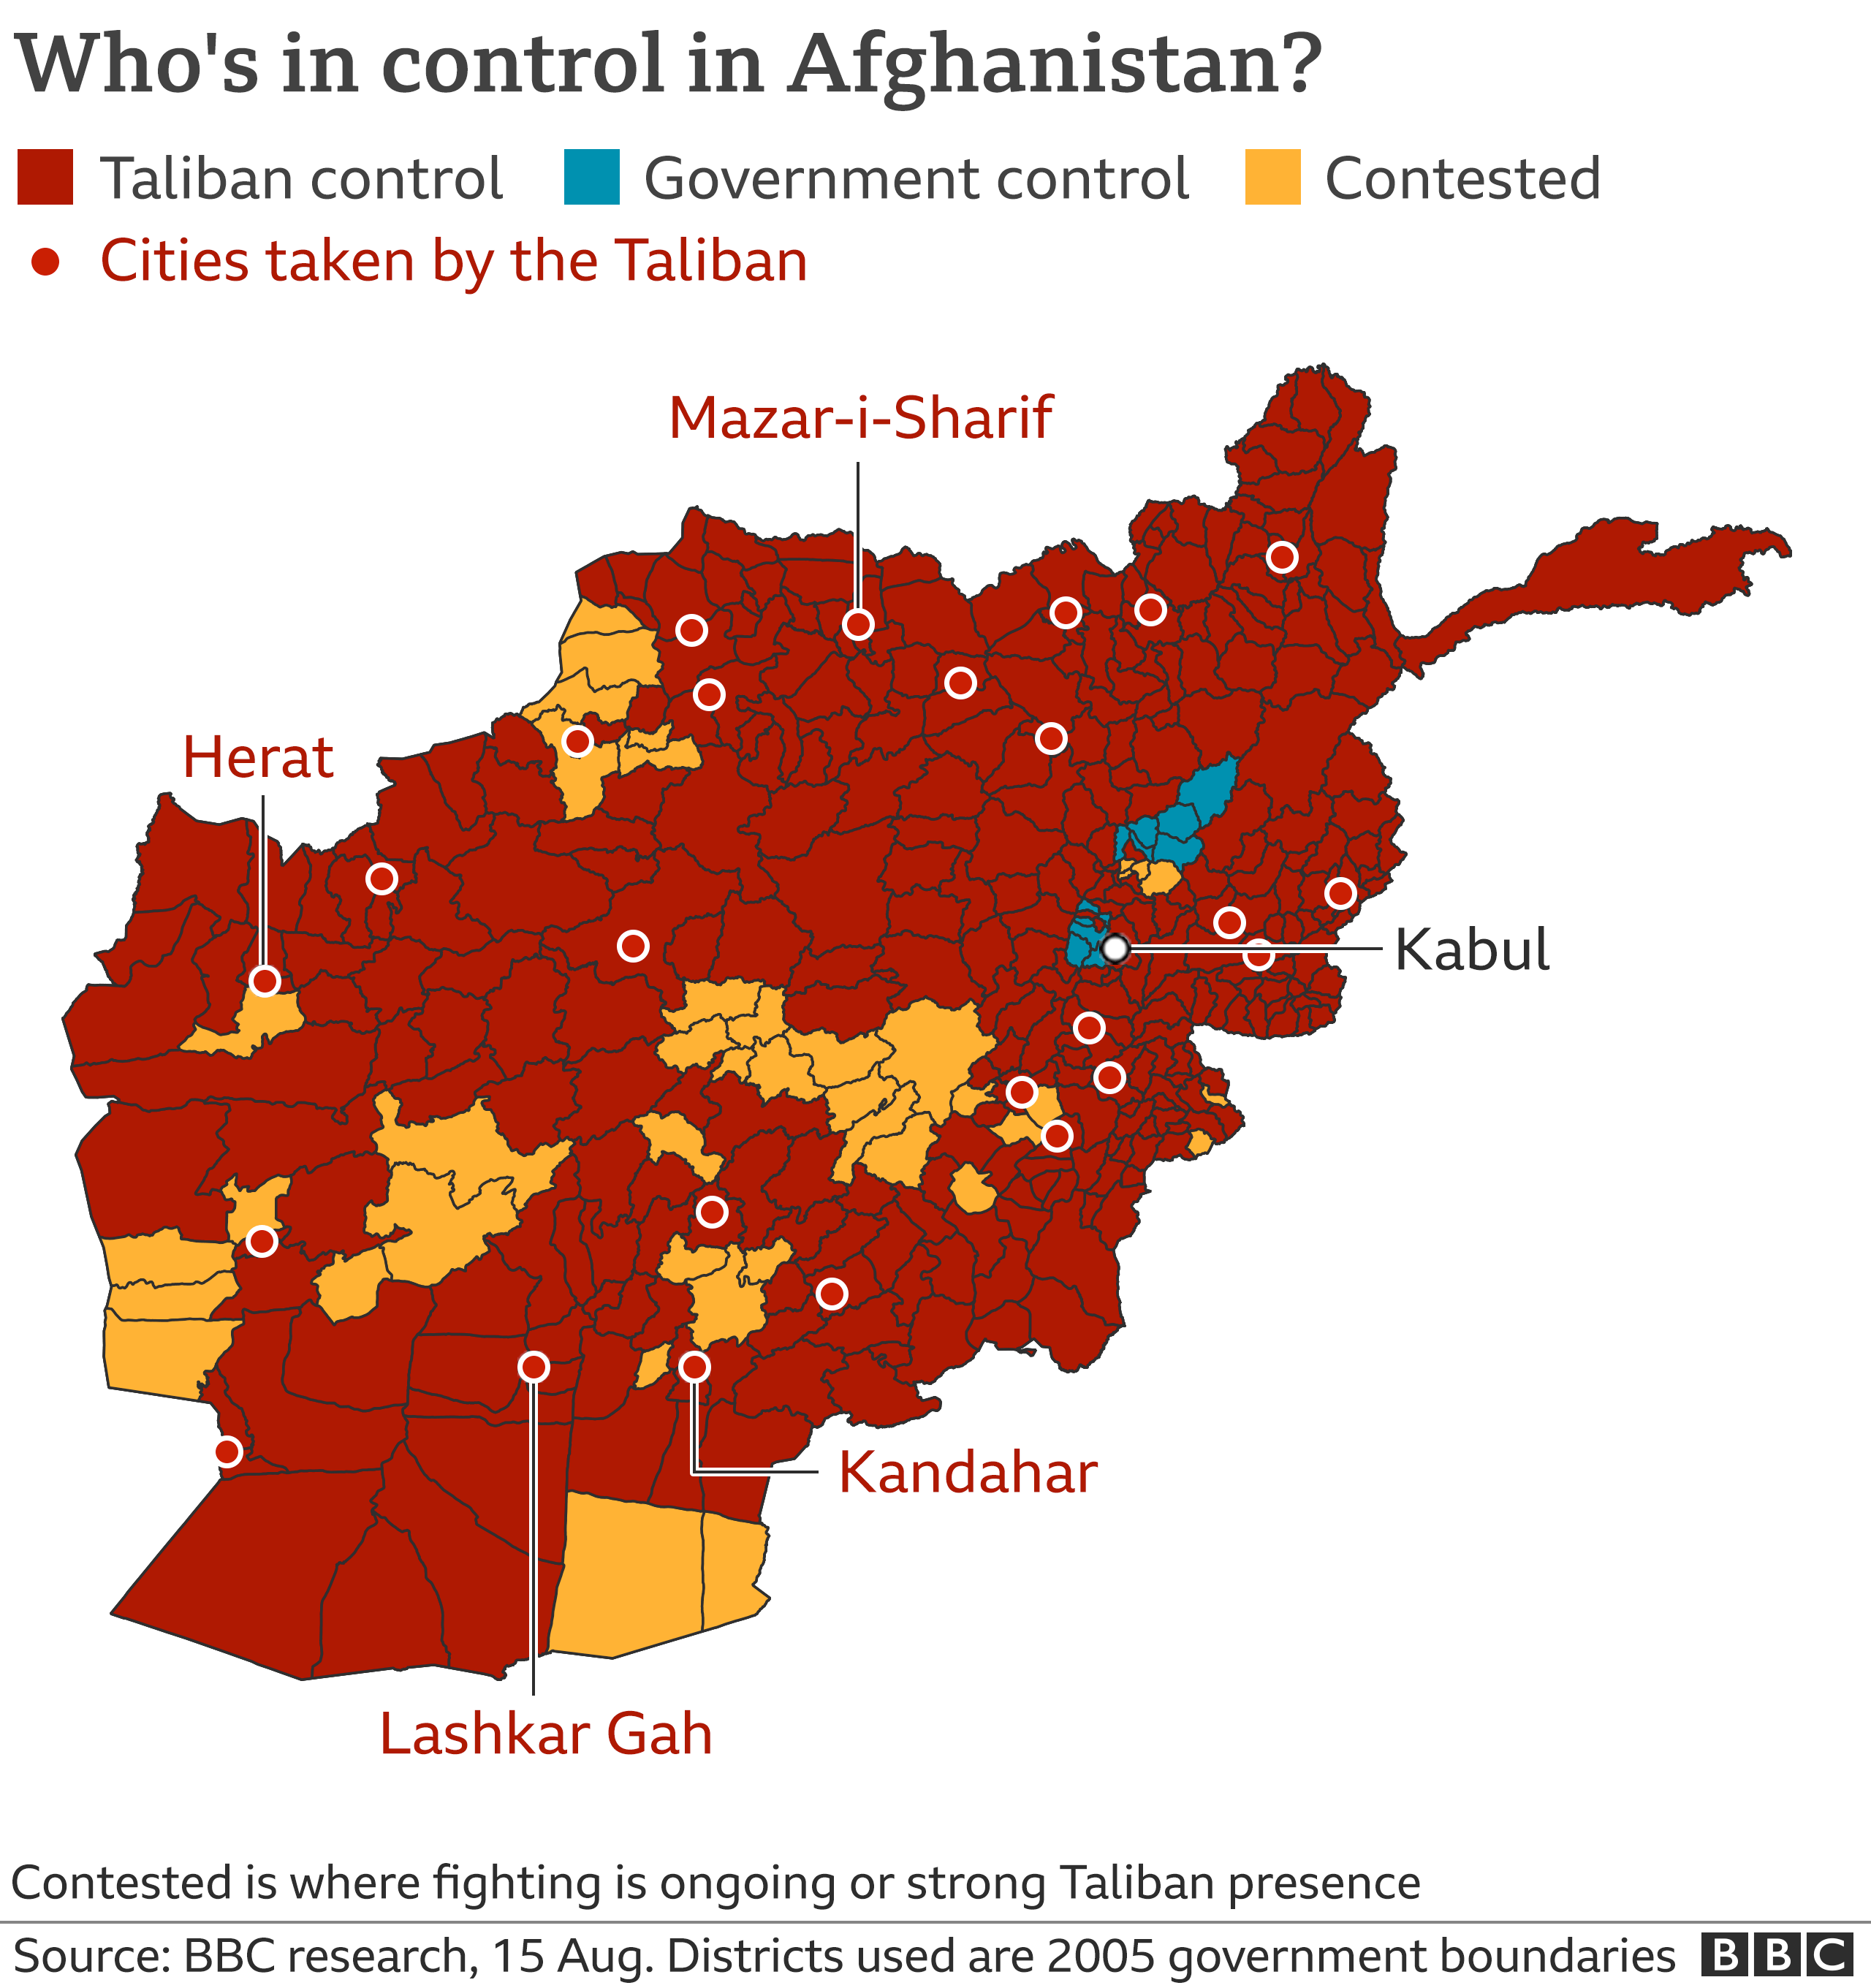 Control map of Afghanistan. Updated 15 Aug. 11:45 BST